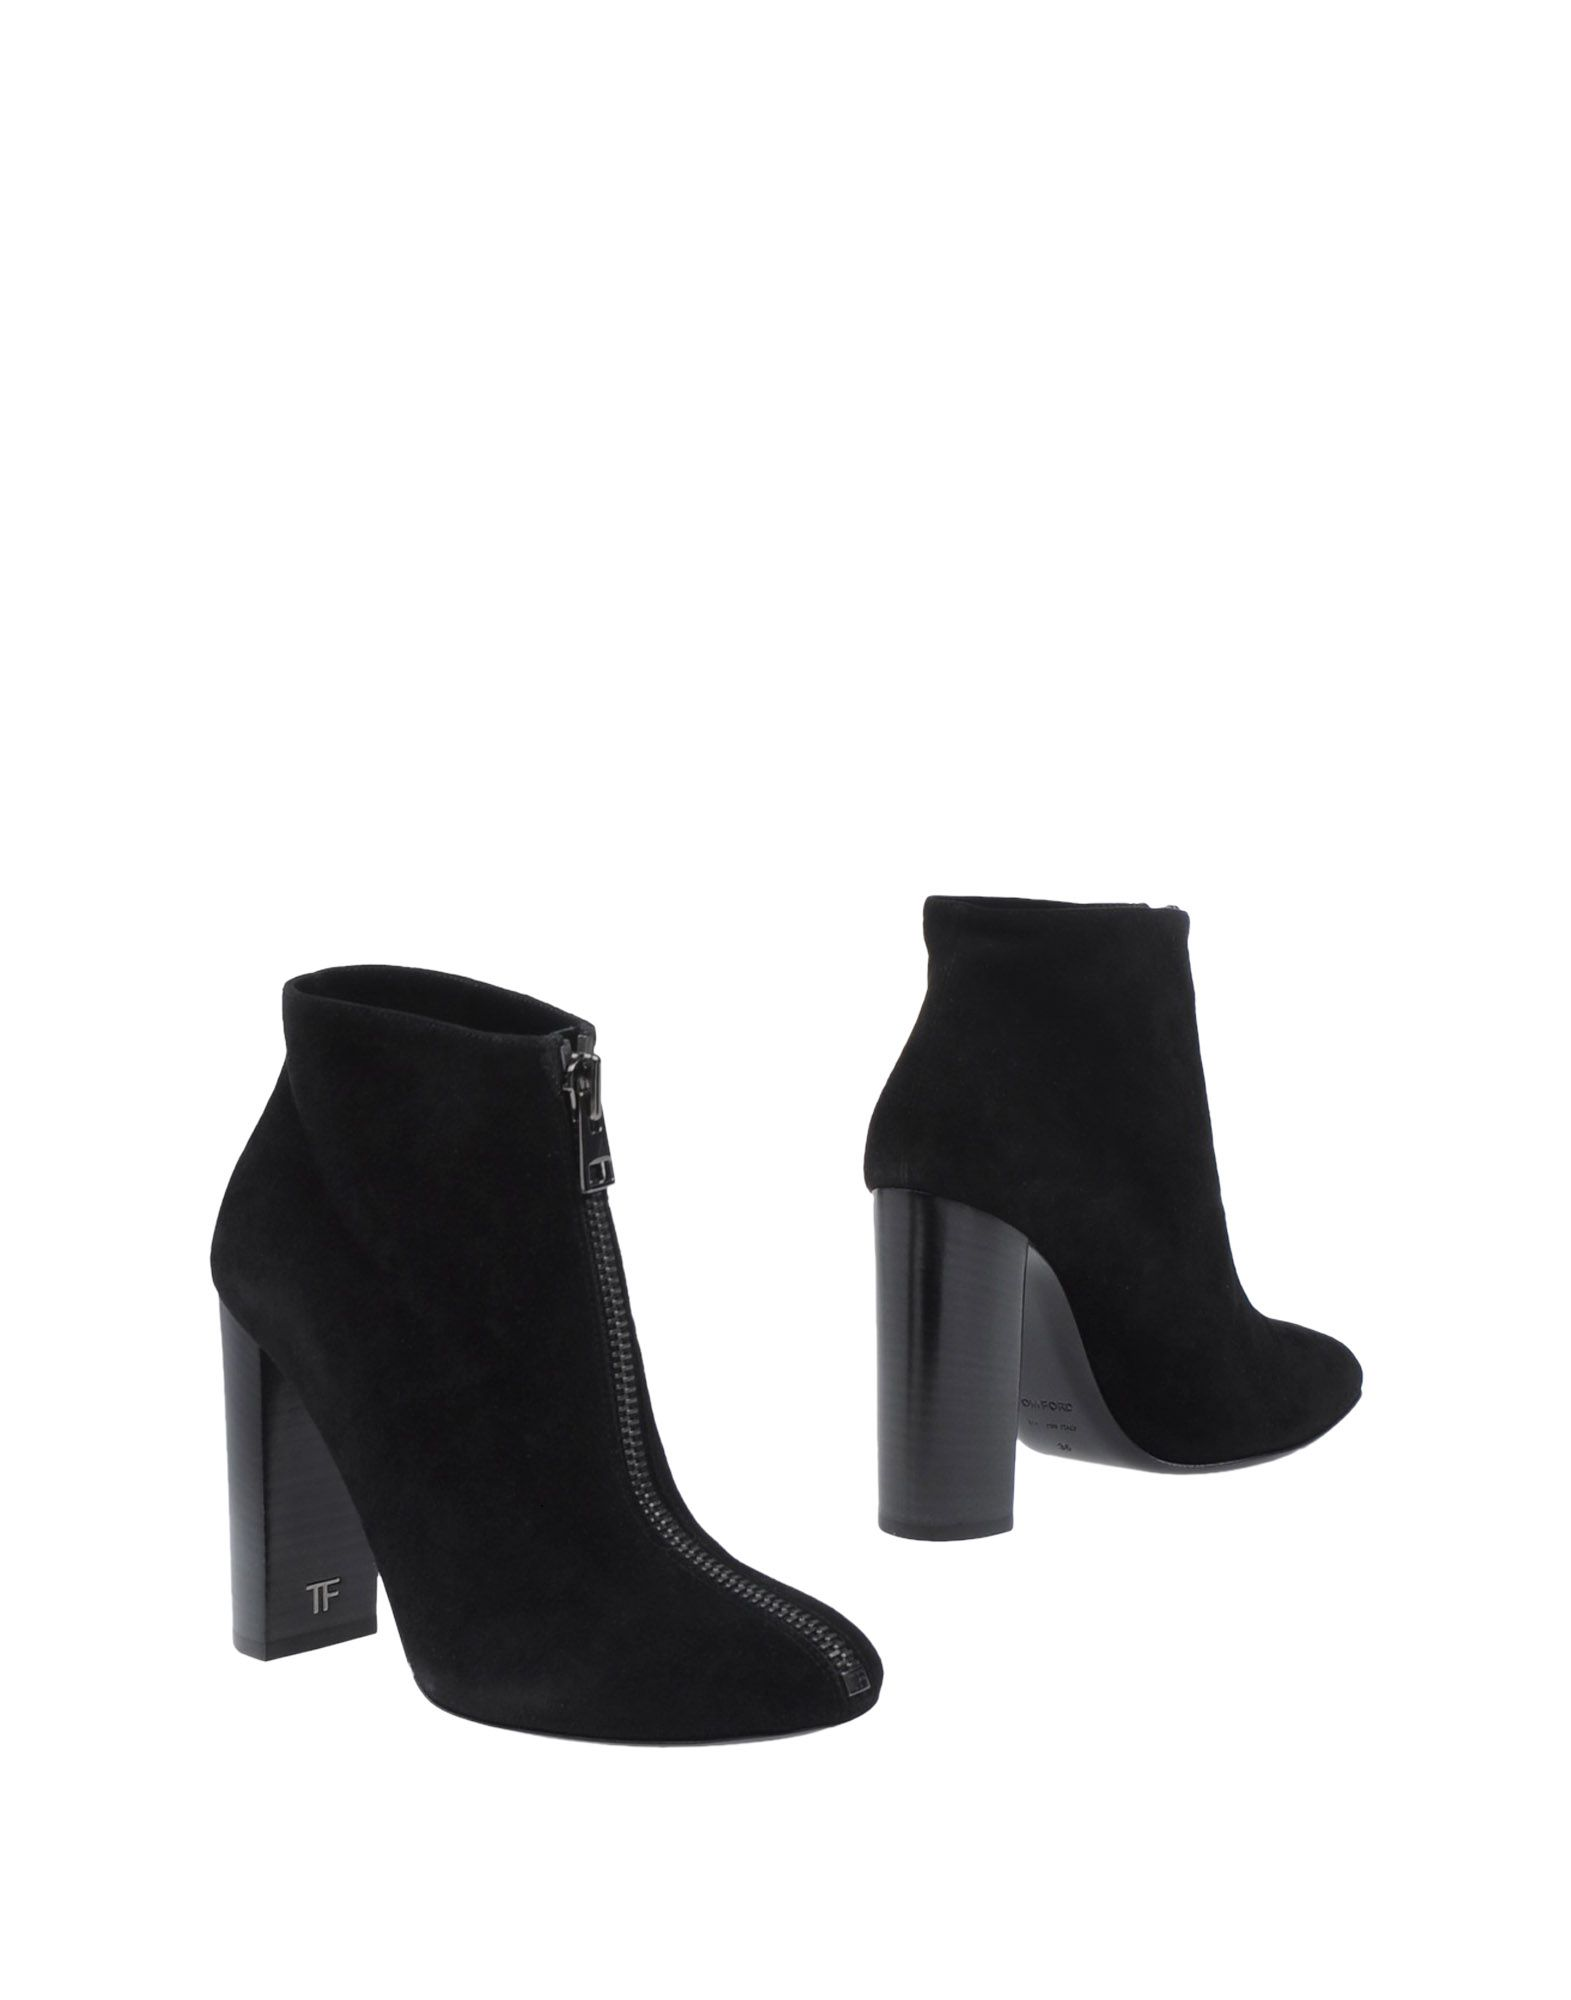 Bottine Tom Ford Femme - Bottines Tom Ford sur